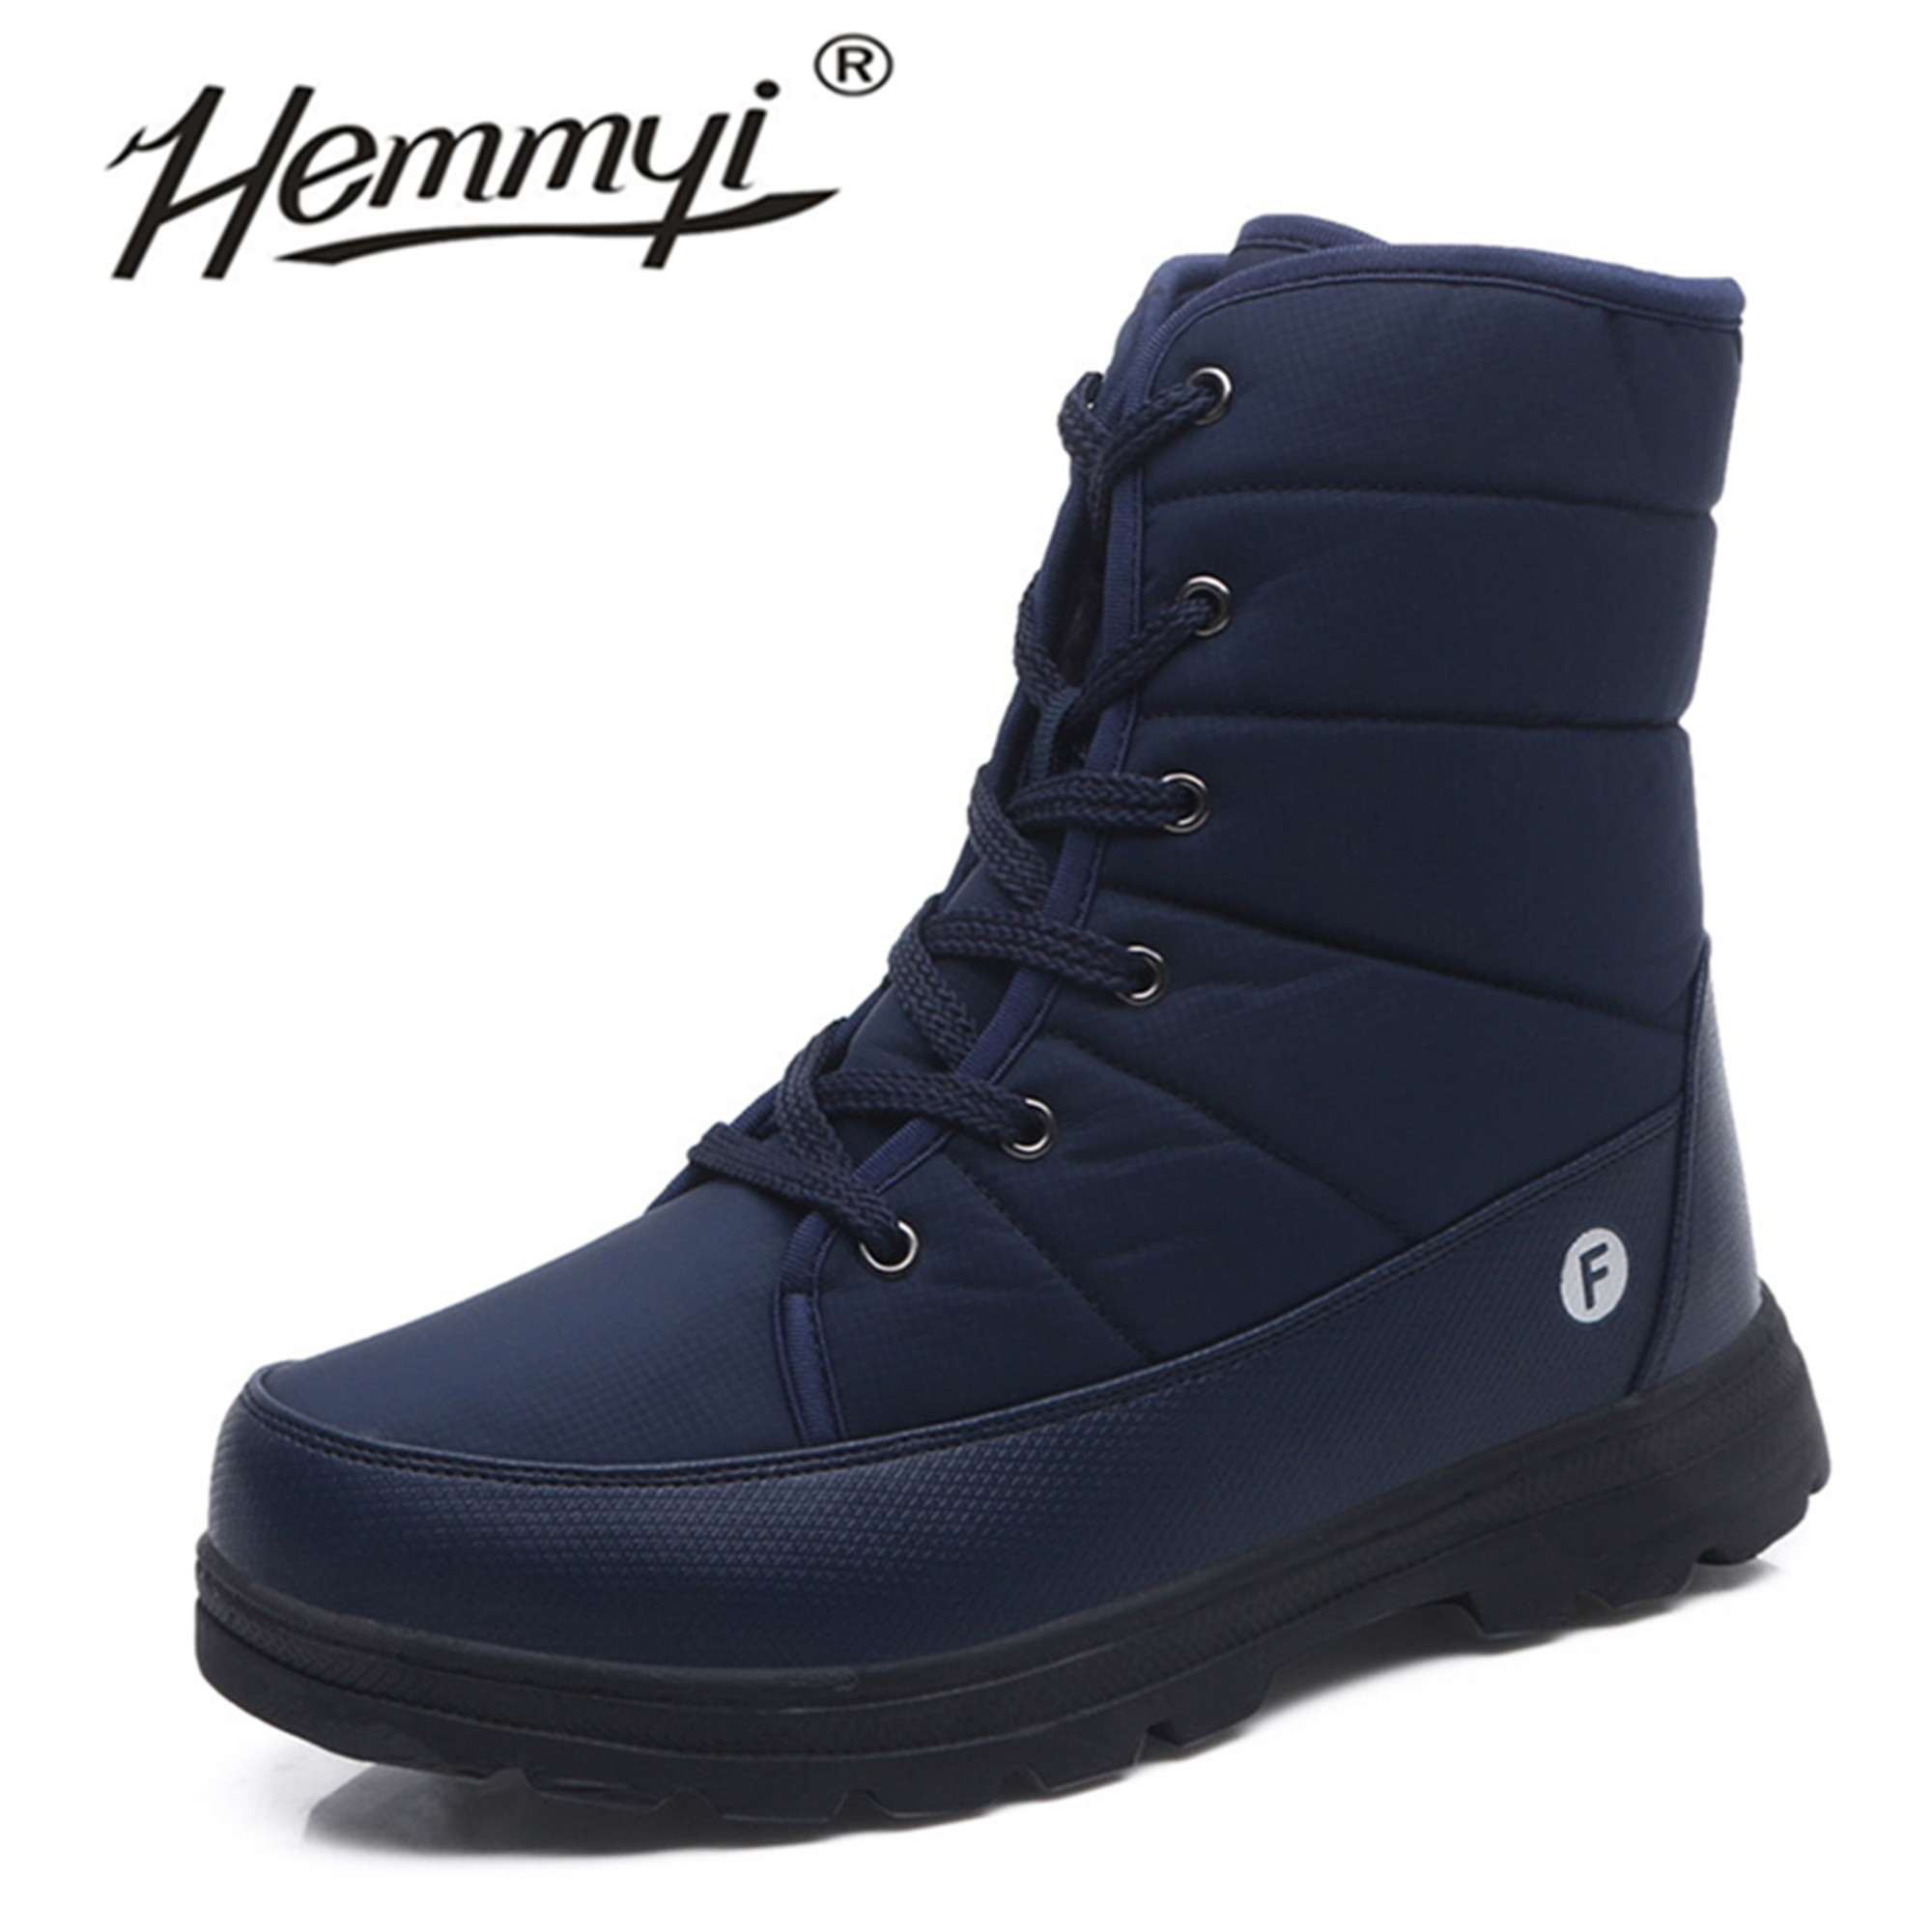 Hemmyi Winter Boots Men Waterproof Lace-up Couple Snow Boots High Quality Keep Warm Outdoor Men Shoes Support Dropshipping